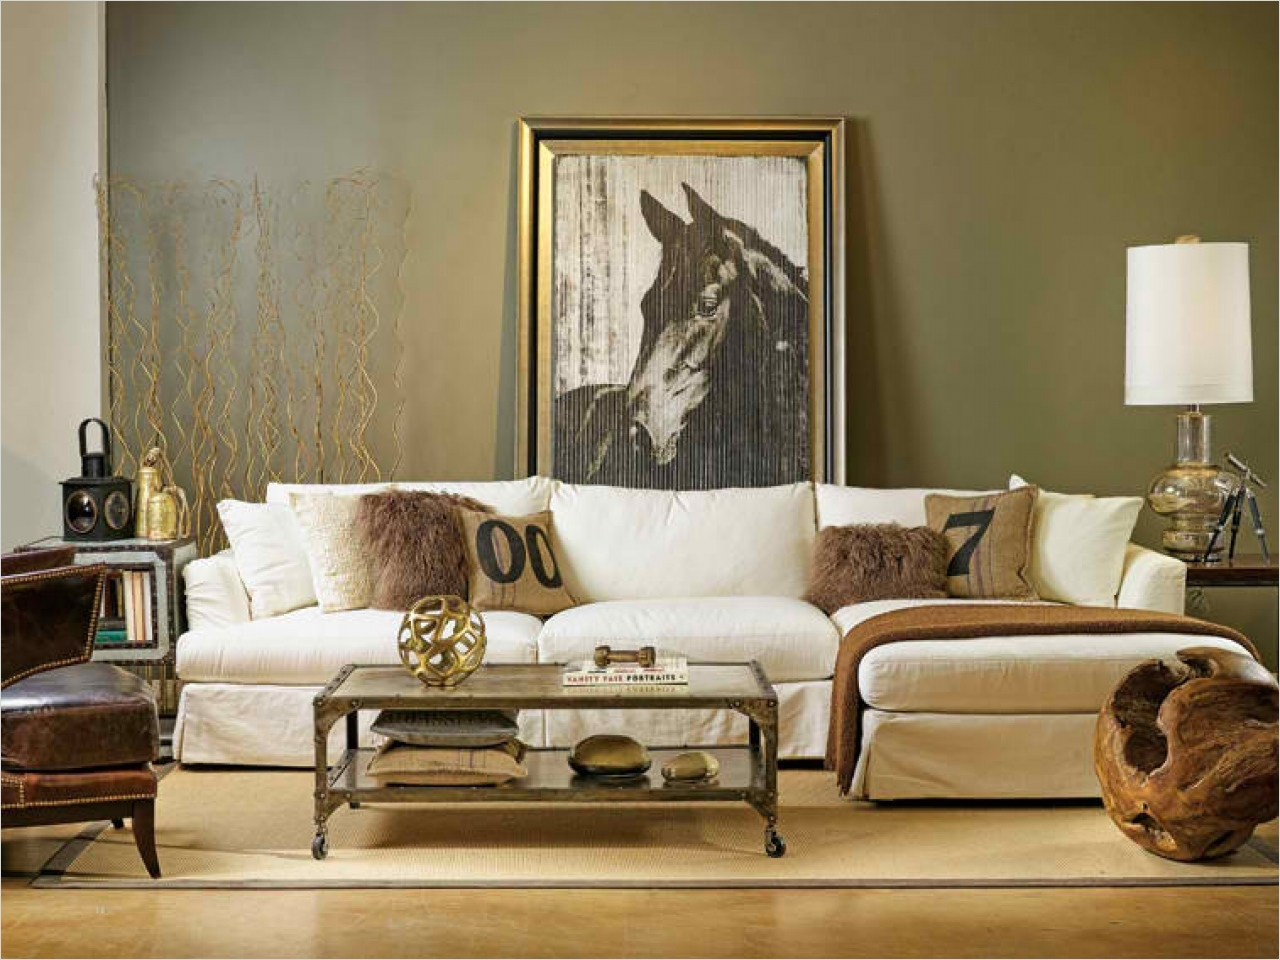 45 Amazing Ideas Country Chic Living Room 59 Interior Decorating Ideas for Small Houses Industrial Chic Office Industrial Country Chic 2